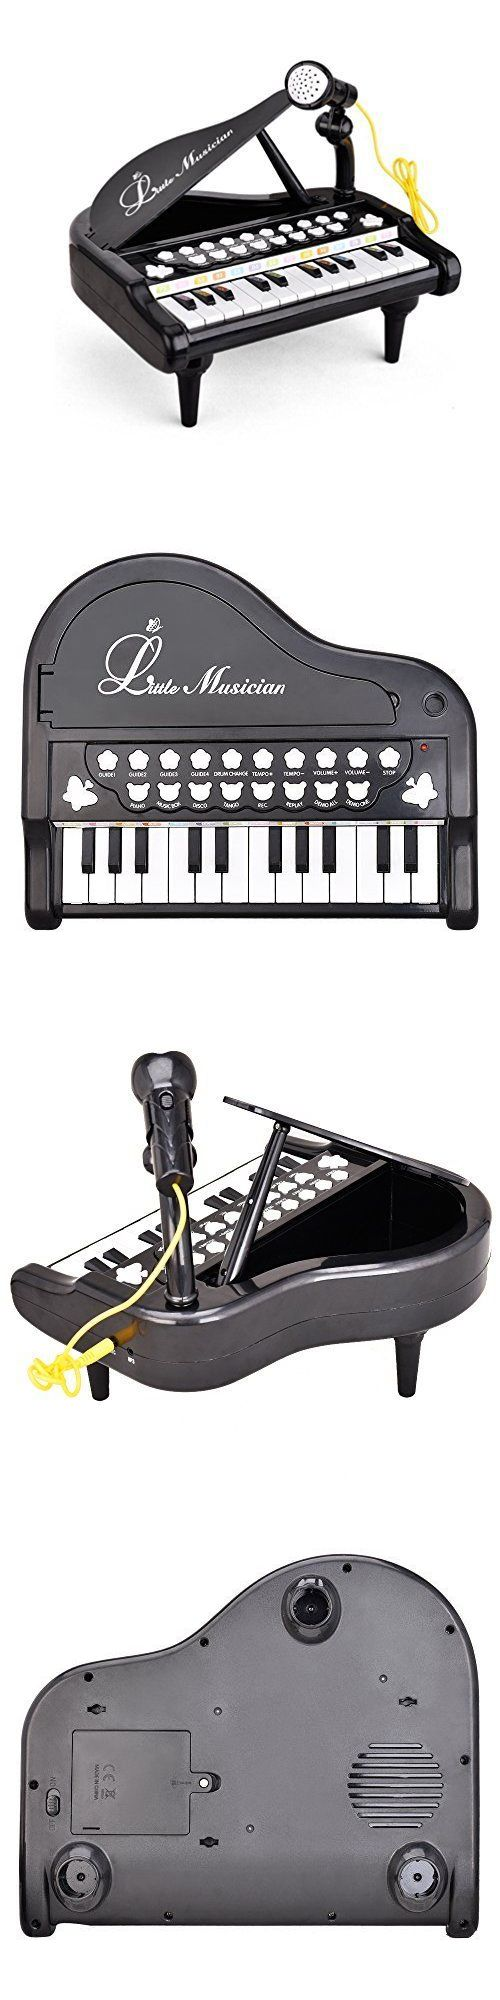 Developmental Baby Toys 100227: 24 Keys Keyboard Mini Piano Music With Microphone Function For Toddler Kid Baby -> BUY IT NOW ONLY: $31.36 on eBay!